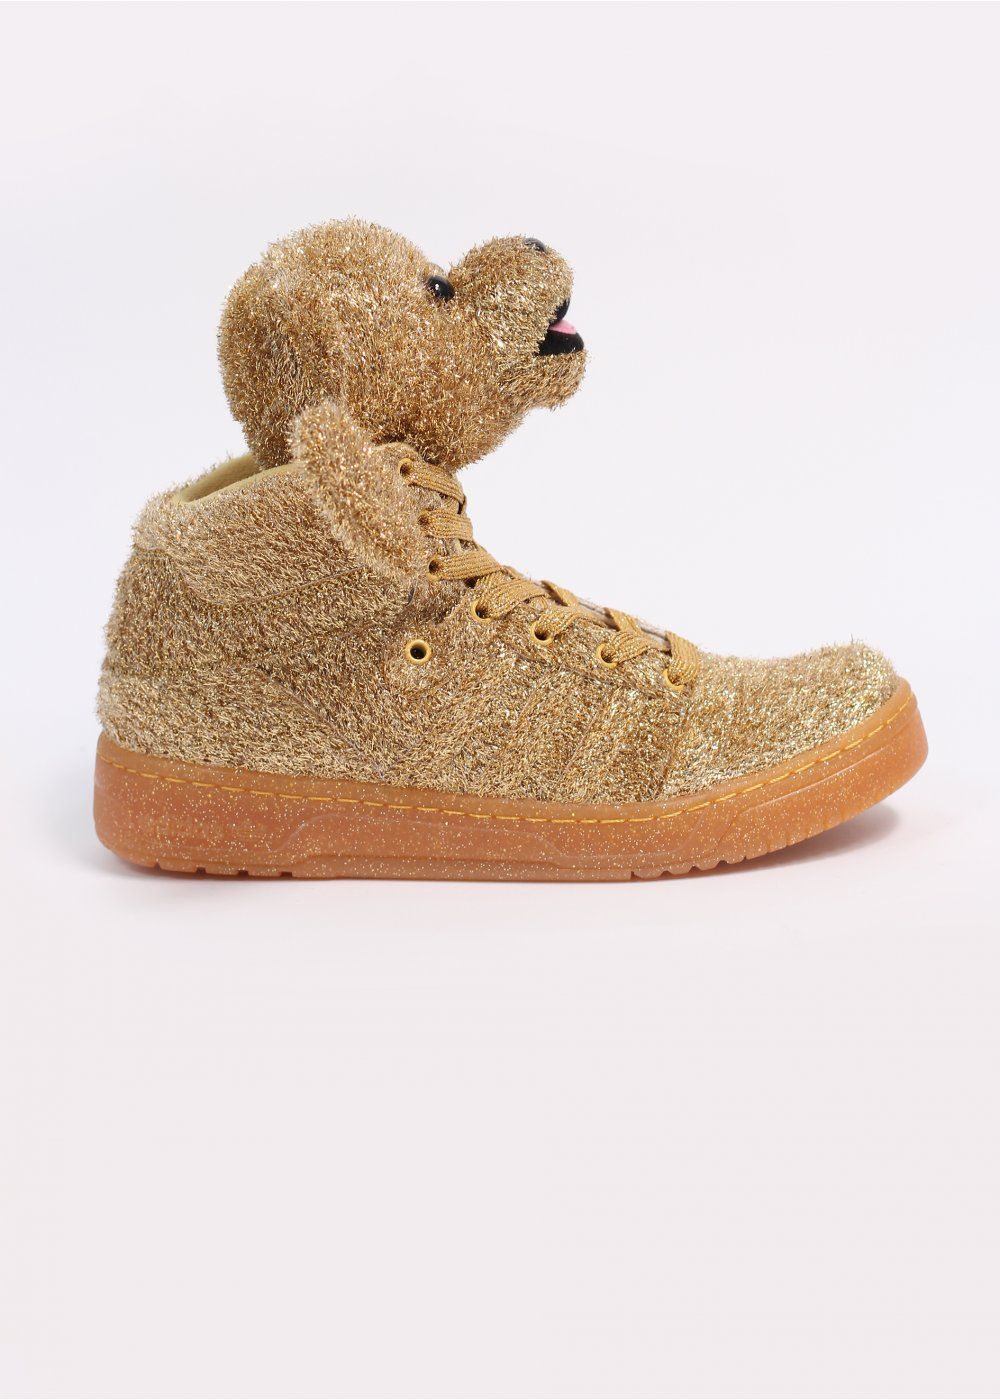 adidas Originals x Jeremy Scott Tinsel Bears Gold  59d5c81f1